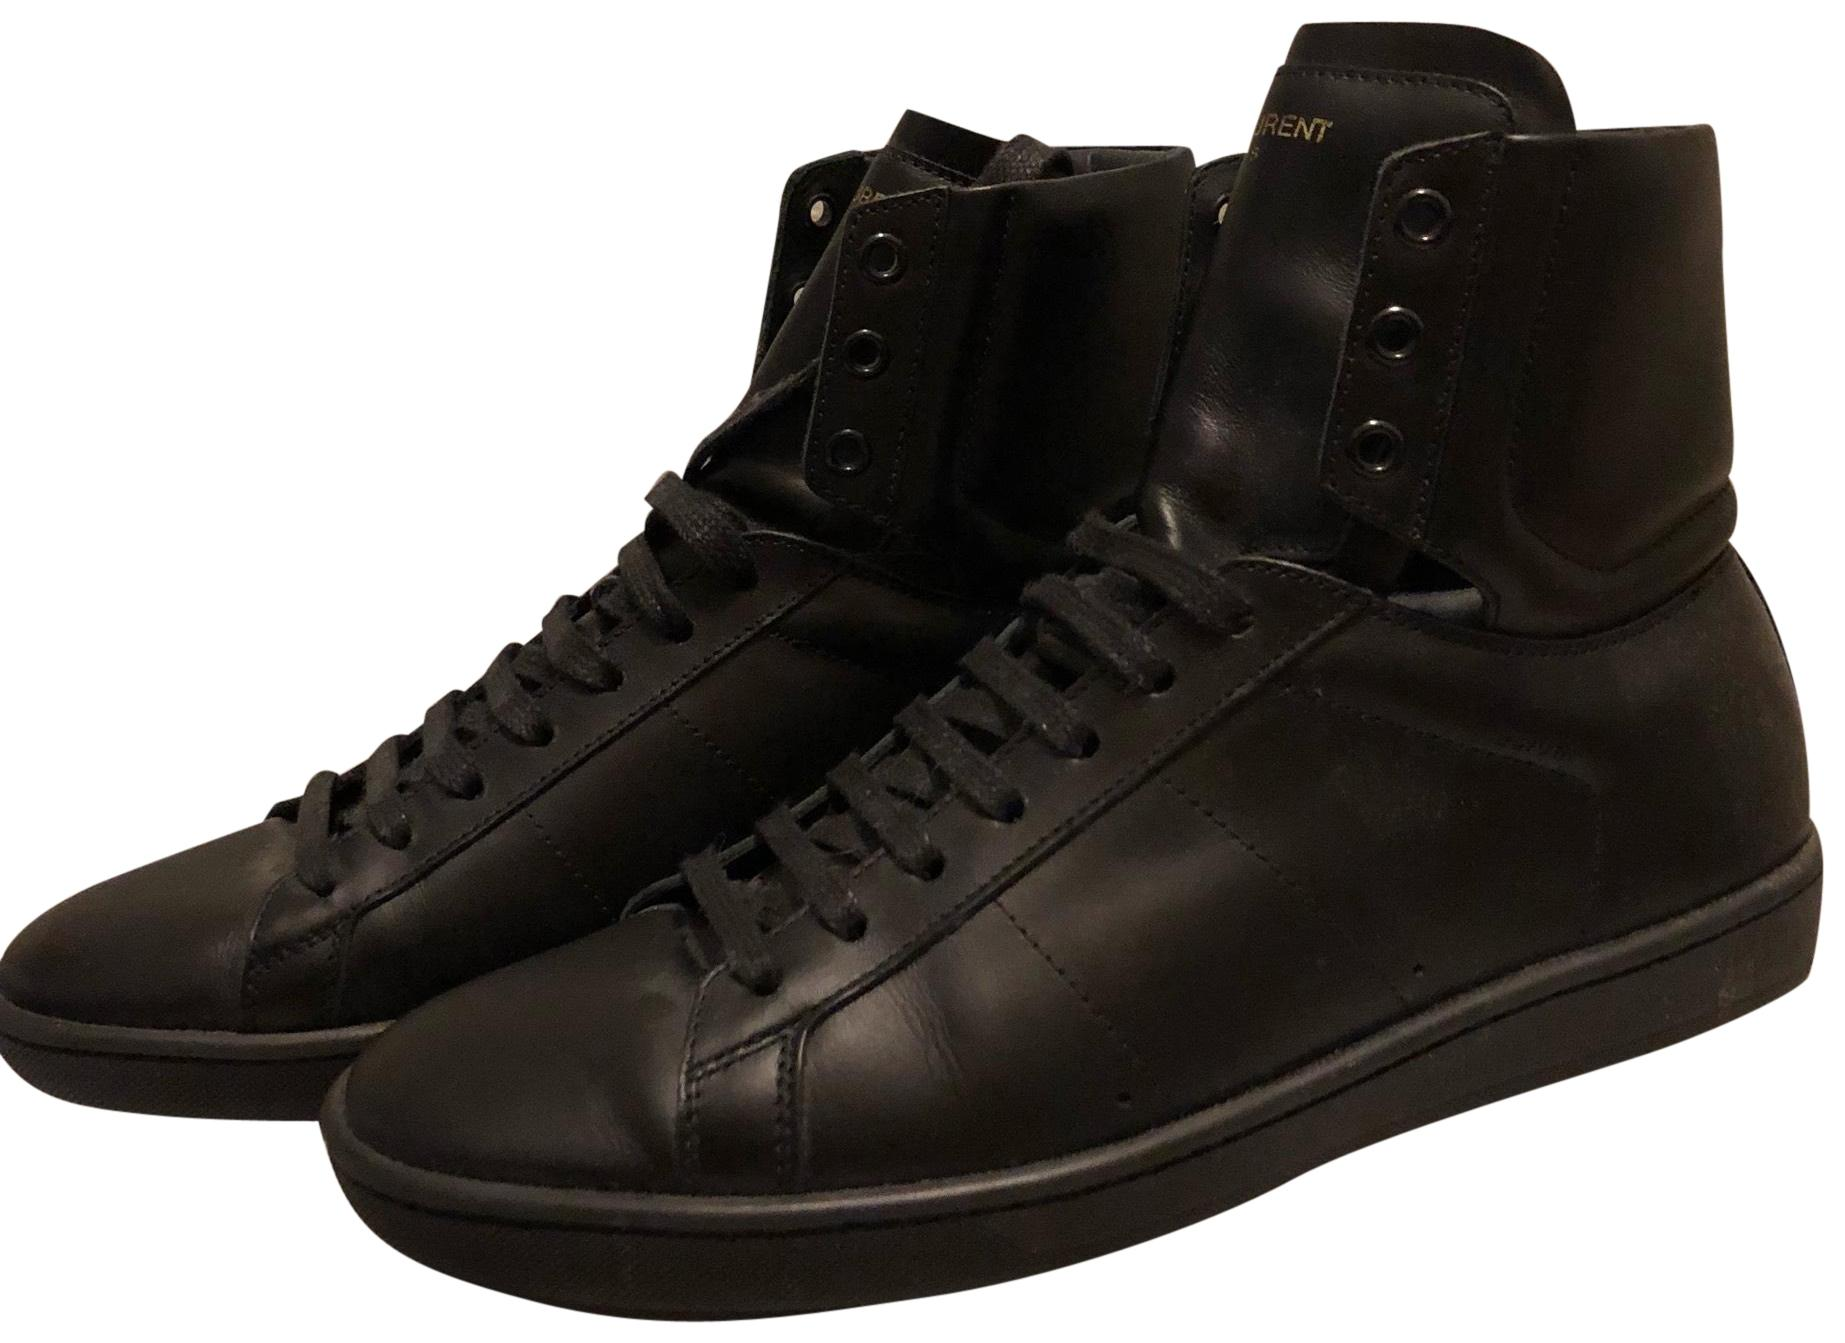 Saint Laurent Black Regular Sneakers Size EU 39.5 (Approx. US 9.5) Regular Black (M, B) 0cf190